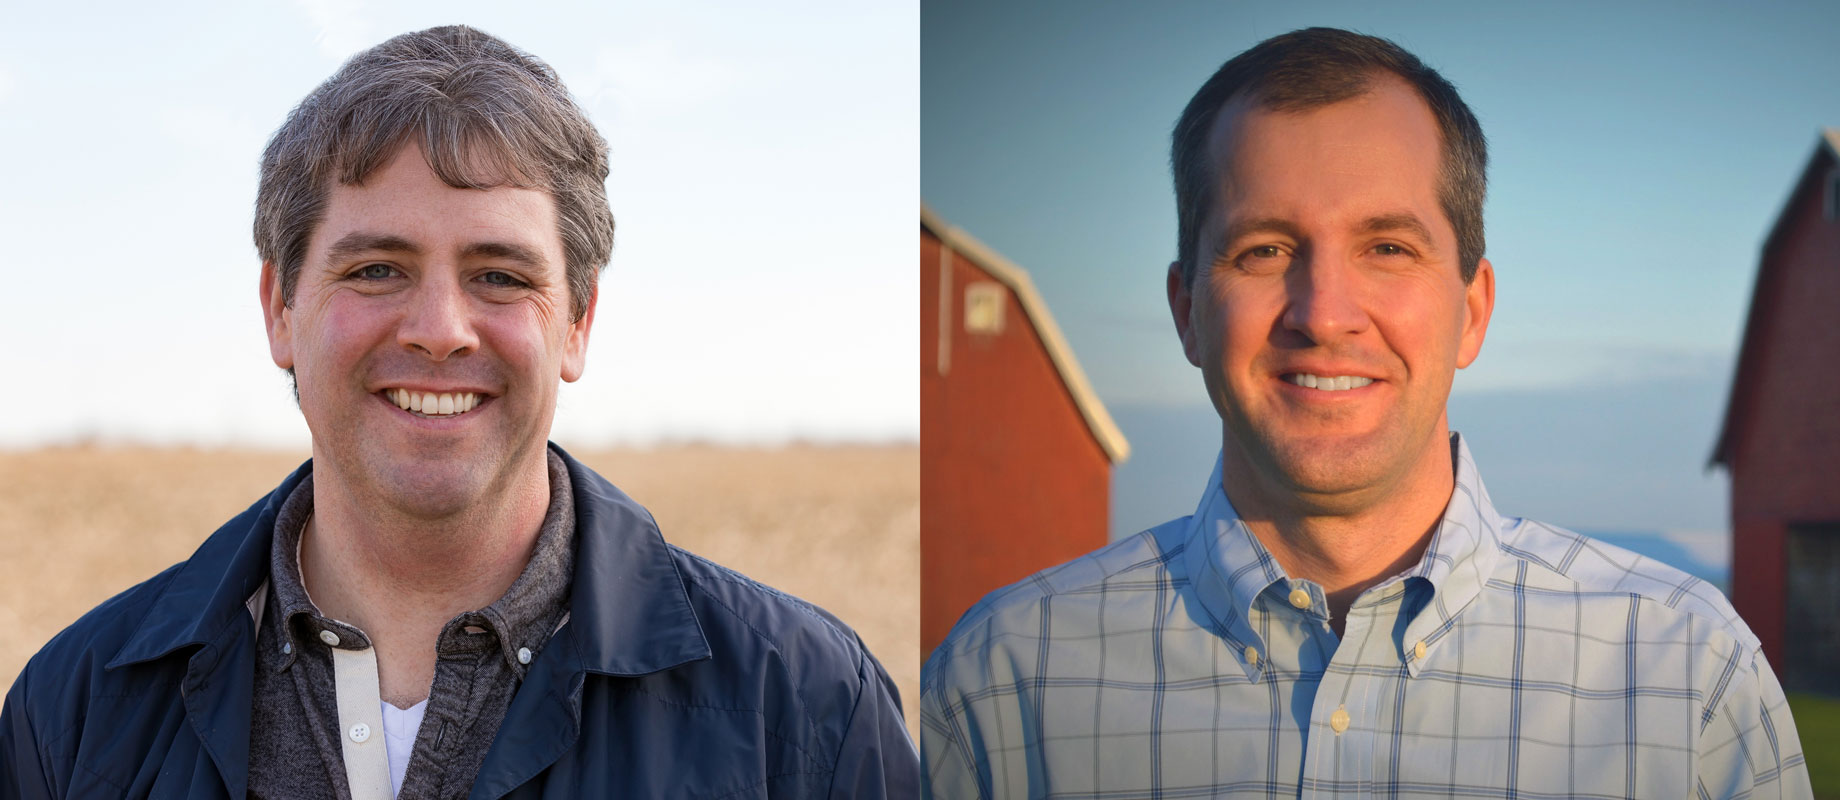 Simpson to Host Secretary Of Agriculture Debate on Oct. 10